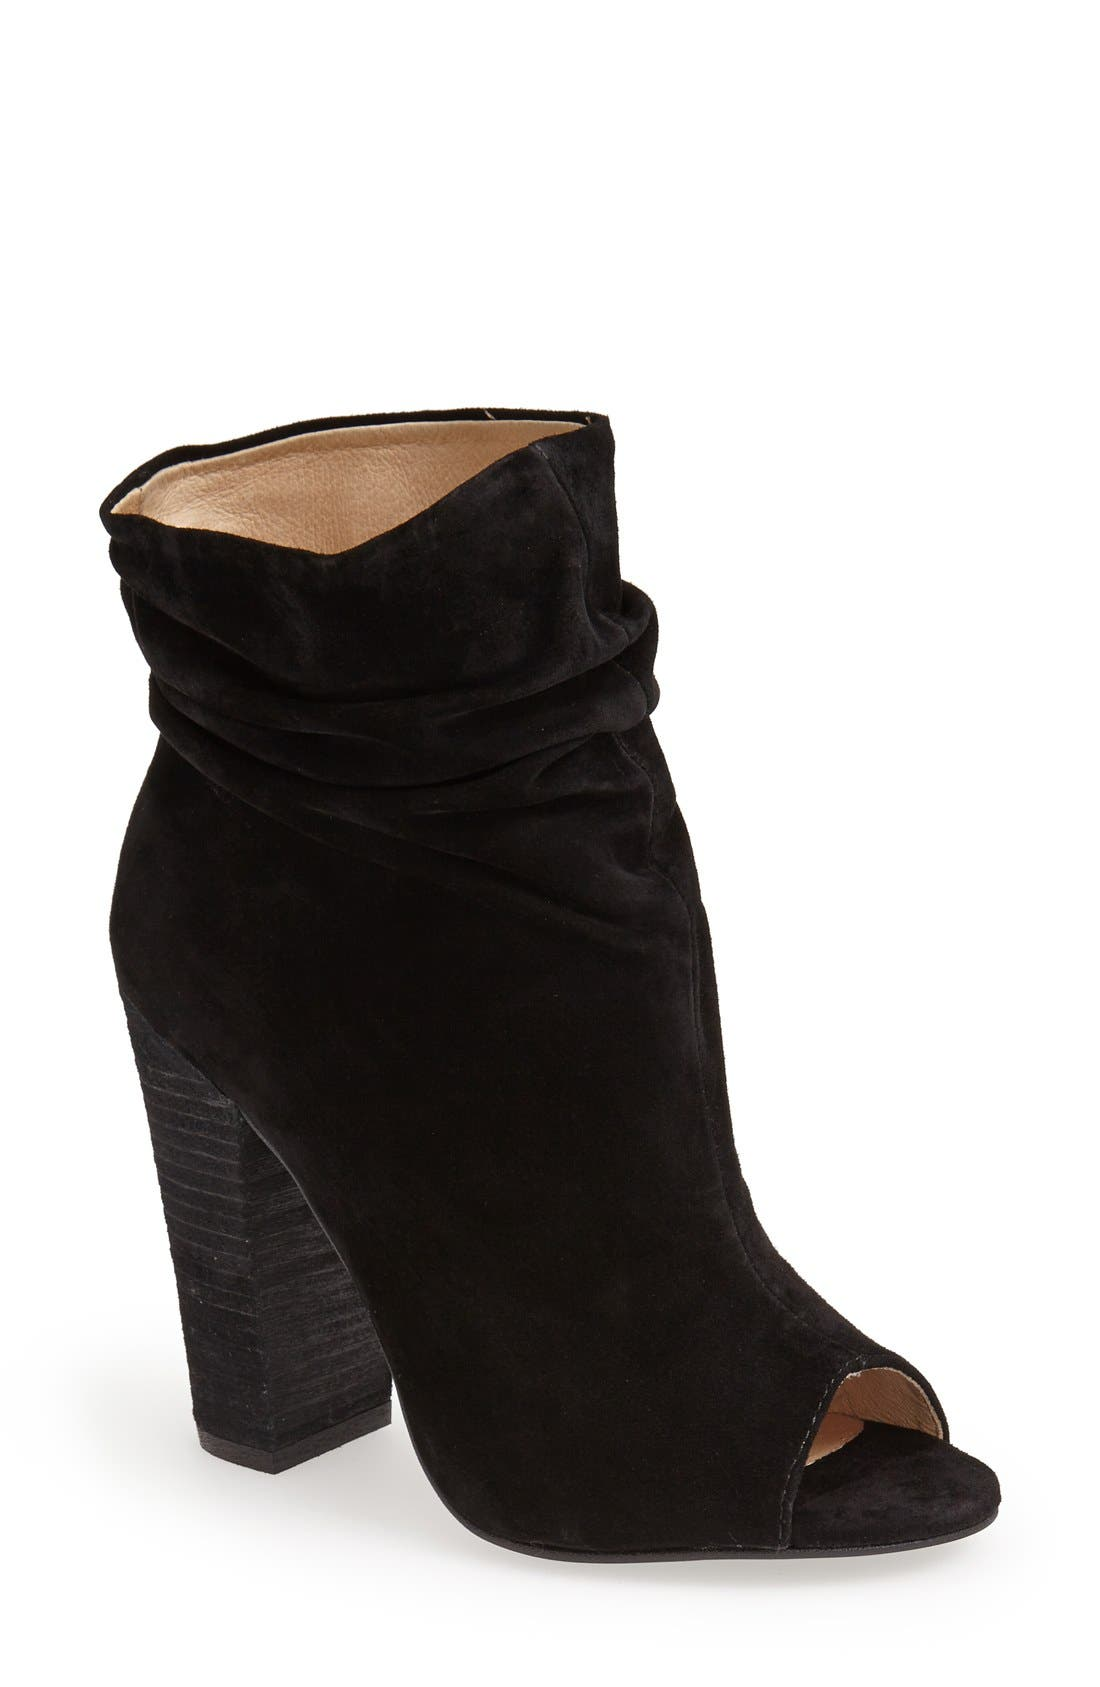 Alternate Image 1 Selected - Kristin Cavallari 'Laurel' Peep Toe Bootie (Women)